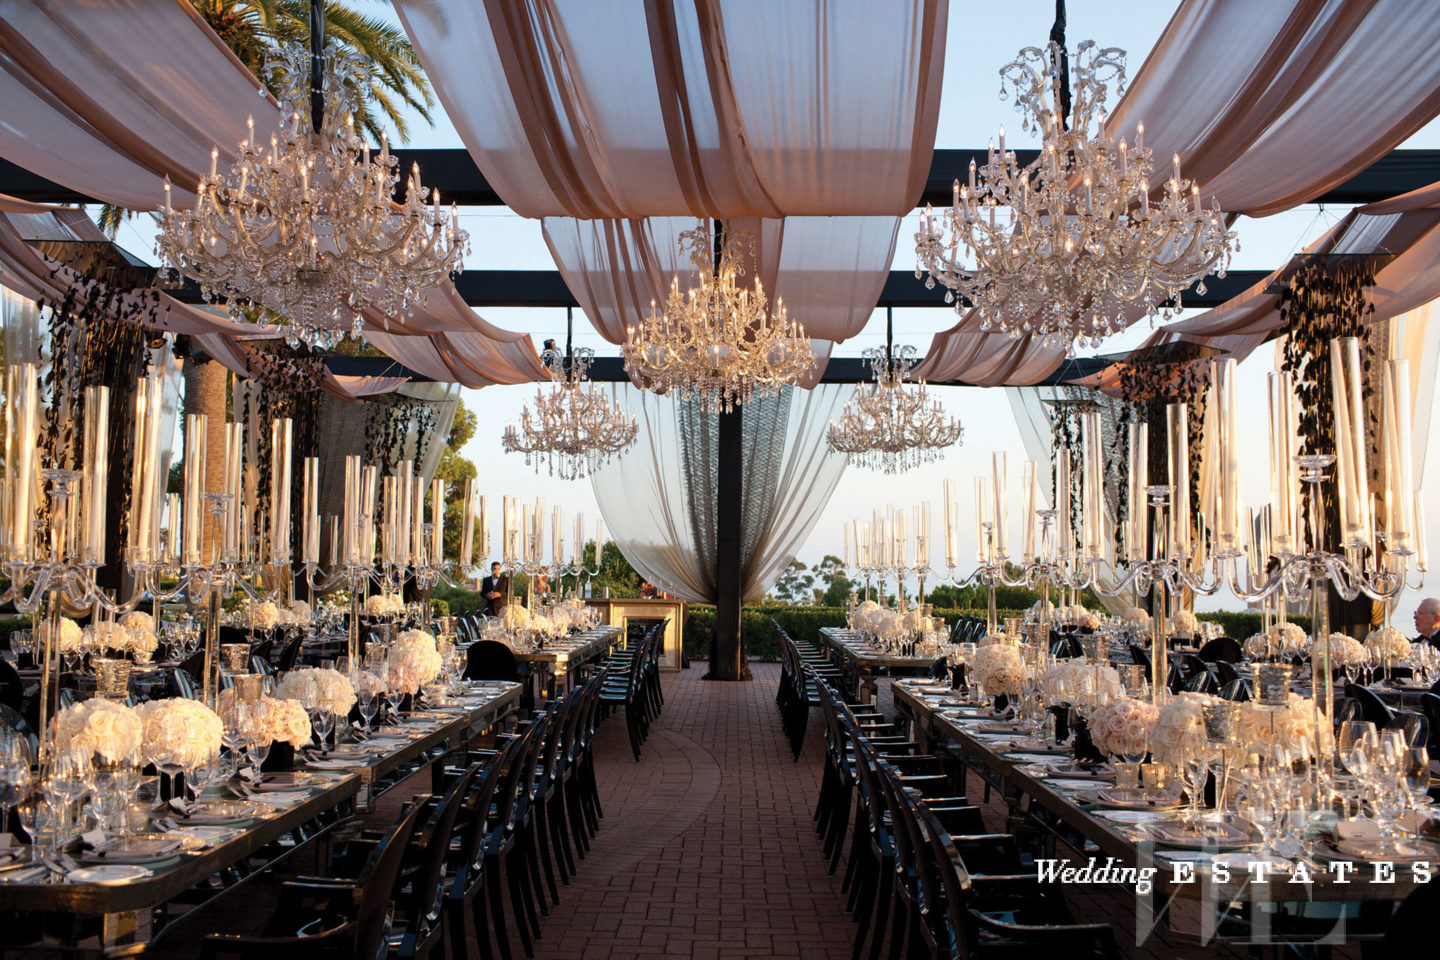 wedding estates Newport beach